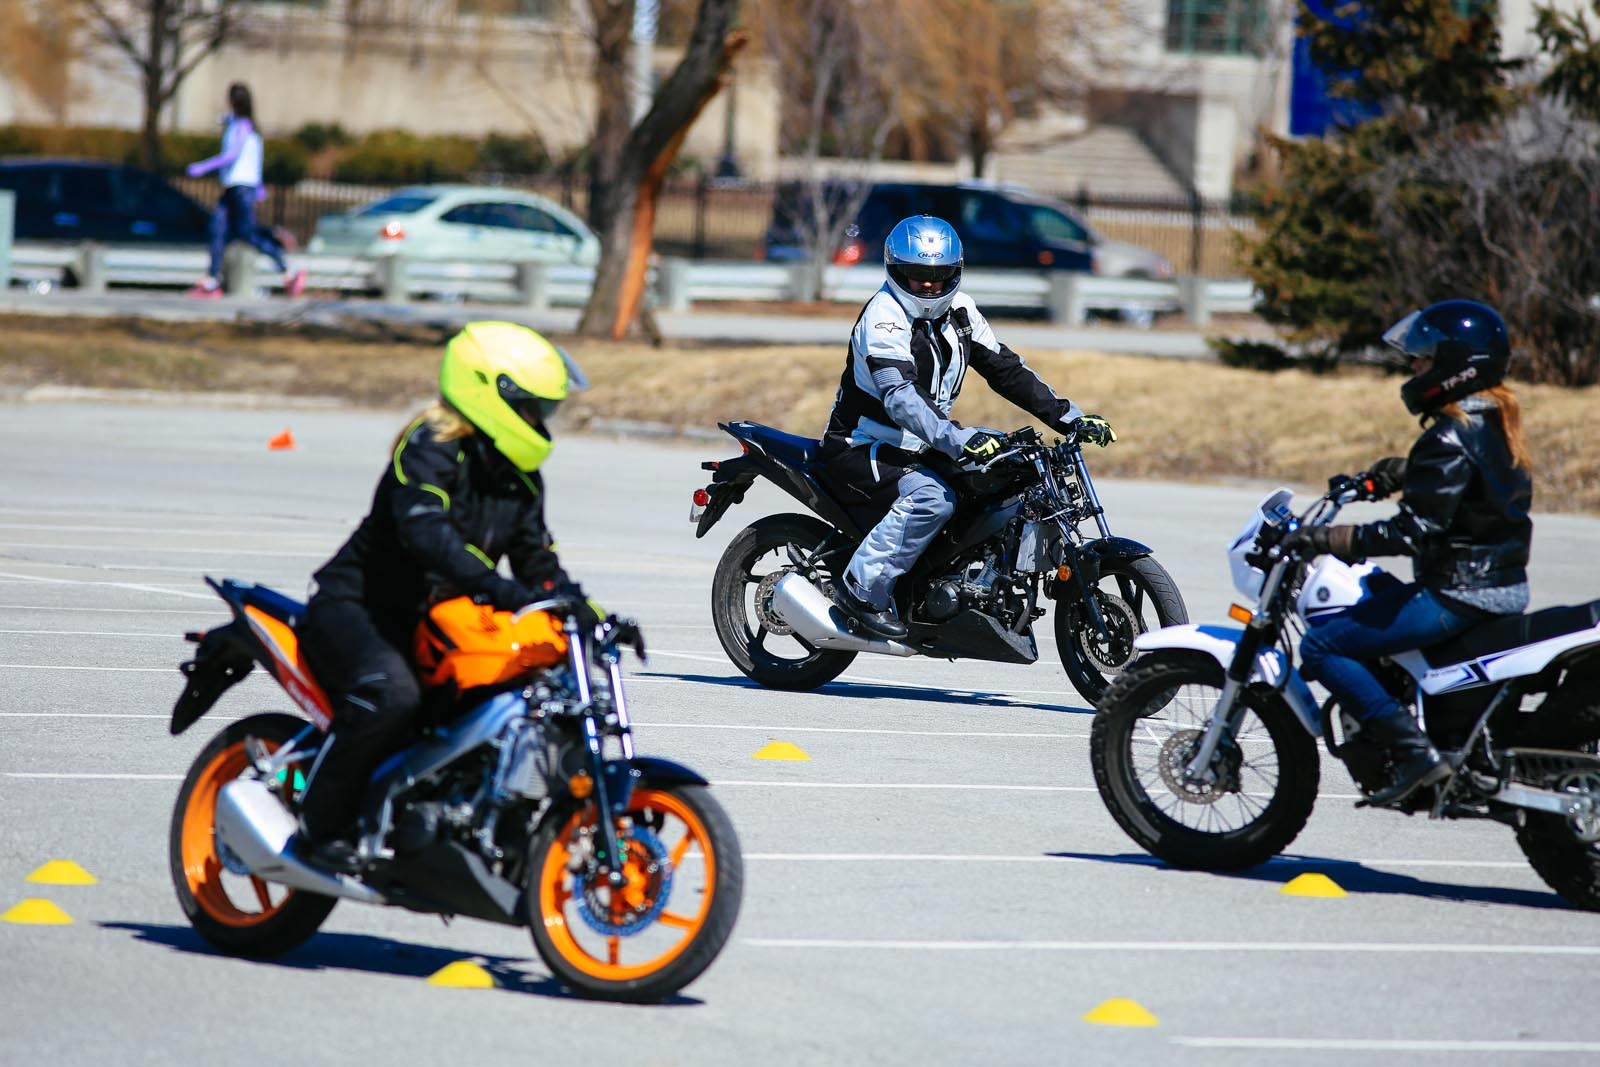 Motorcycle Safety Course Michigan Cost Sugakiya Motor